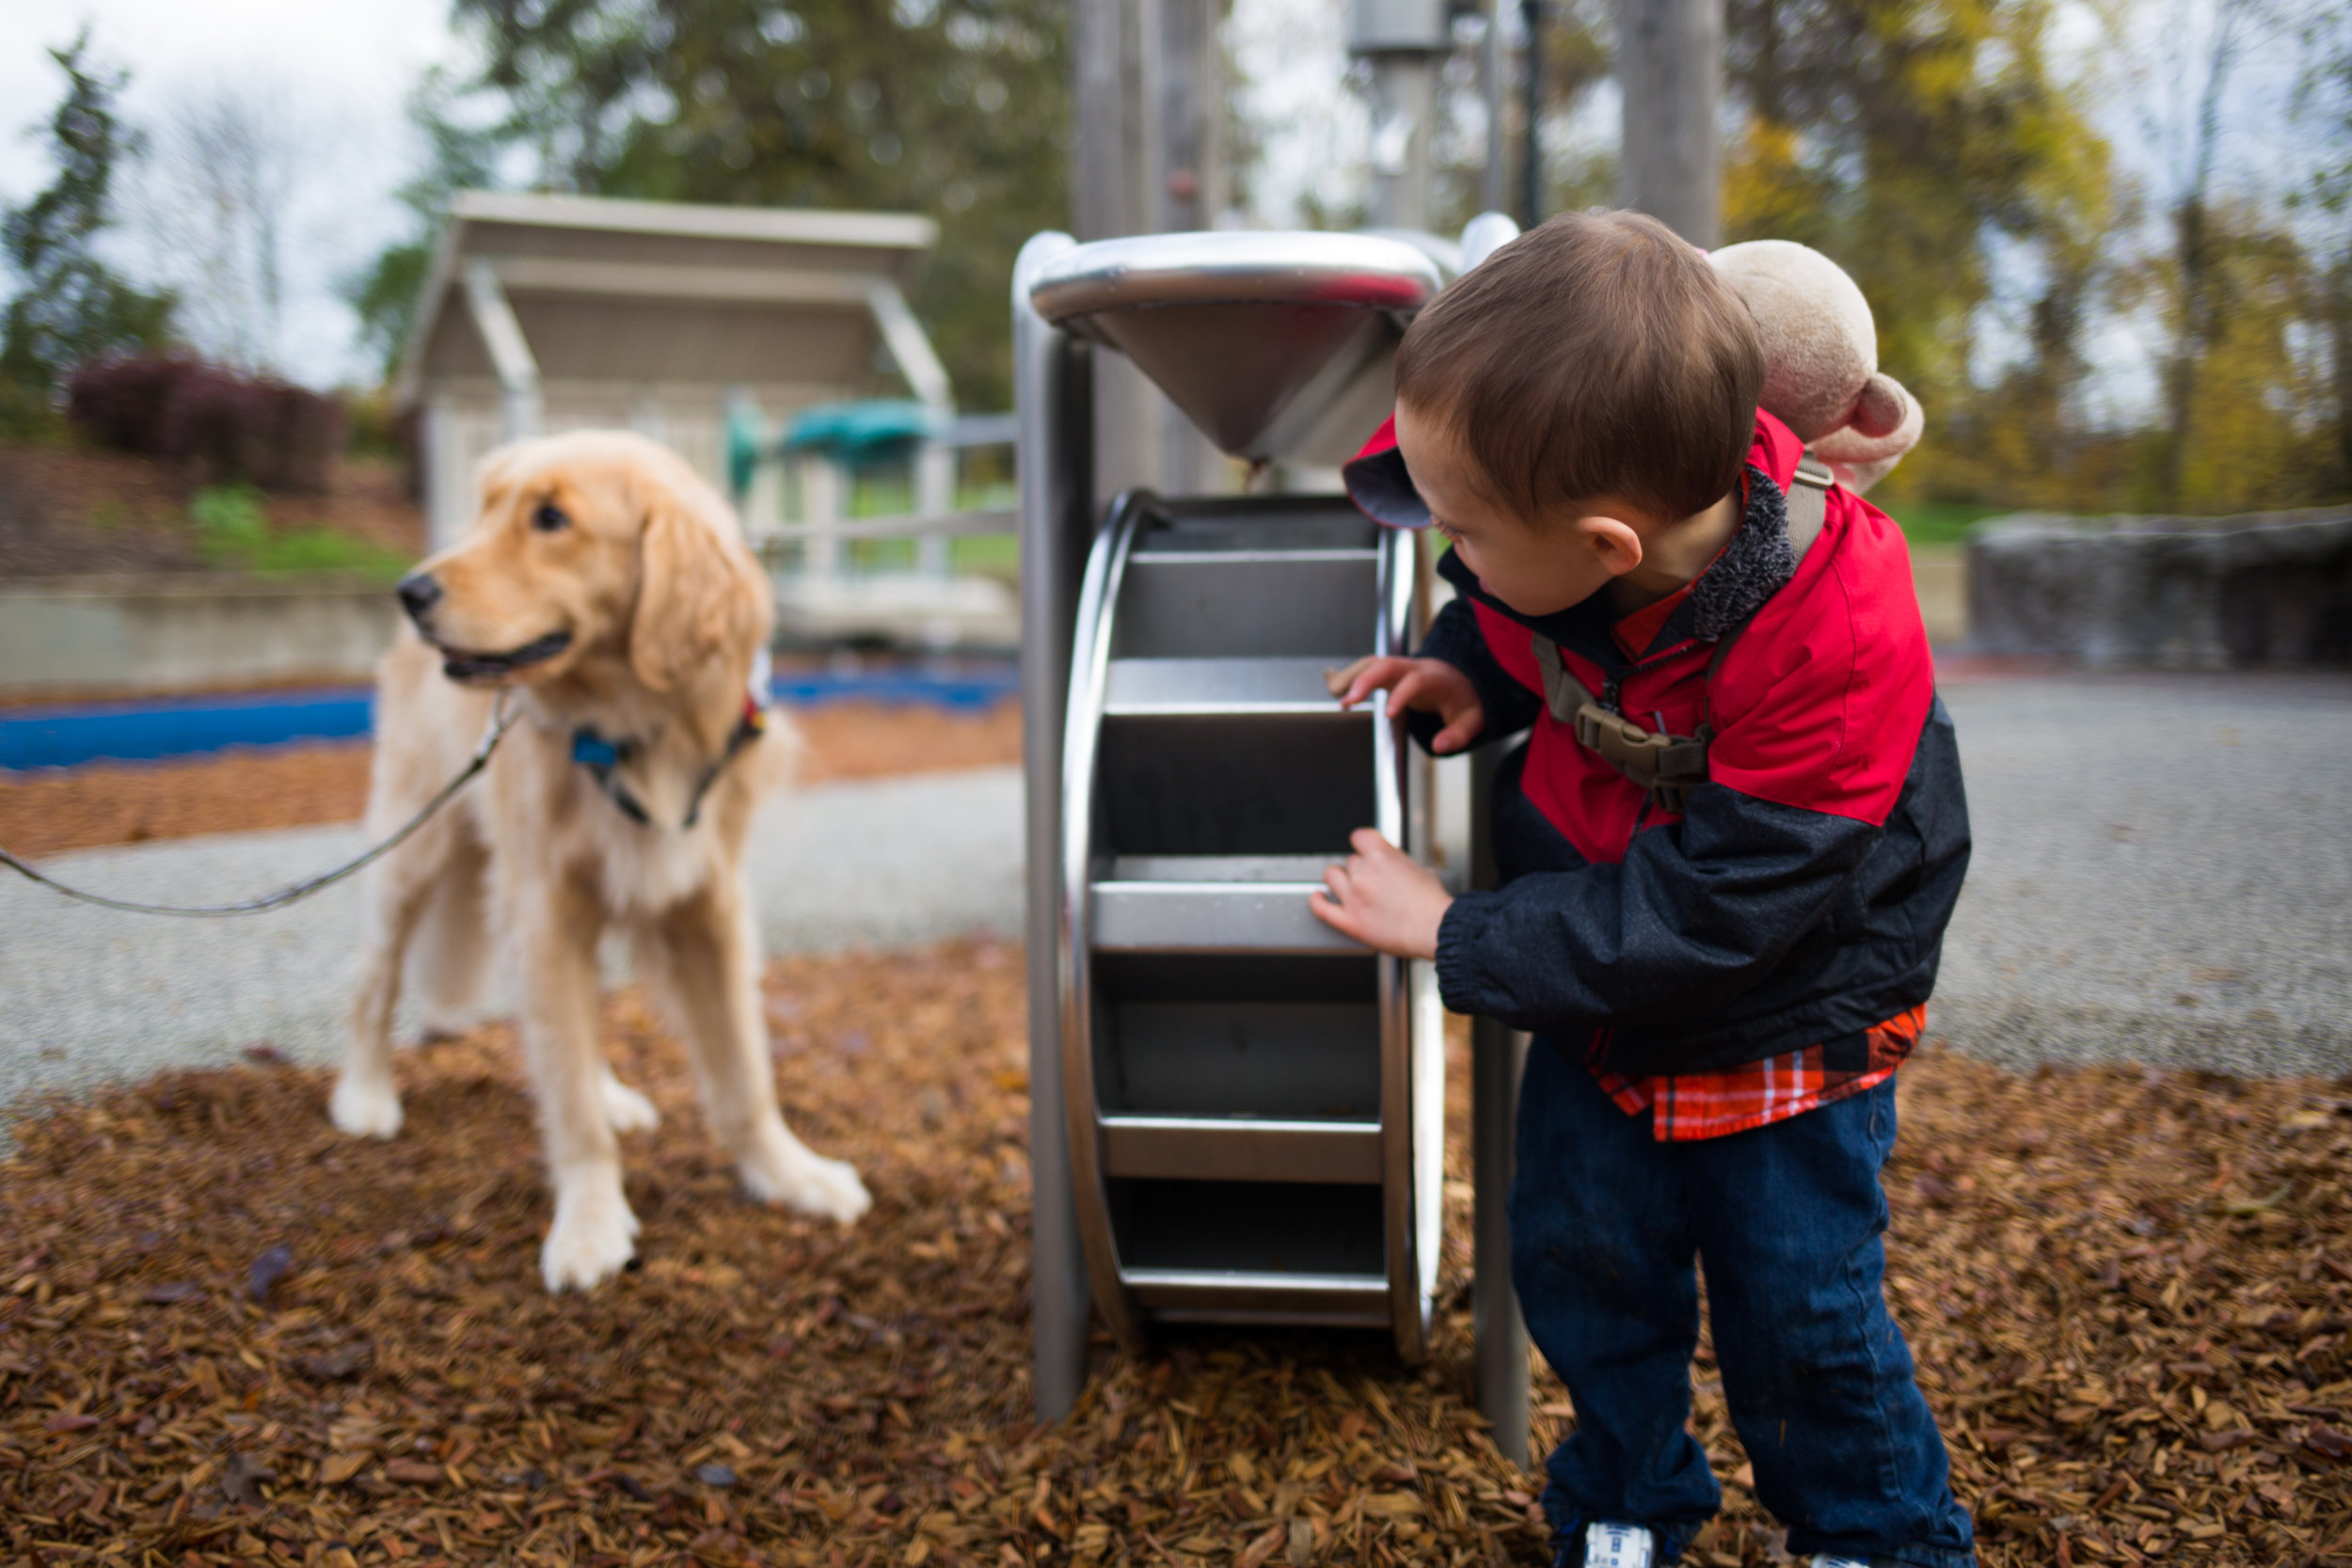 James peaks around a play structure to check on his service dog and friend Dave. The pair stick next to each other wherever they go.